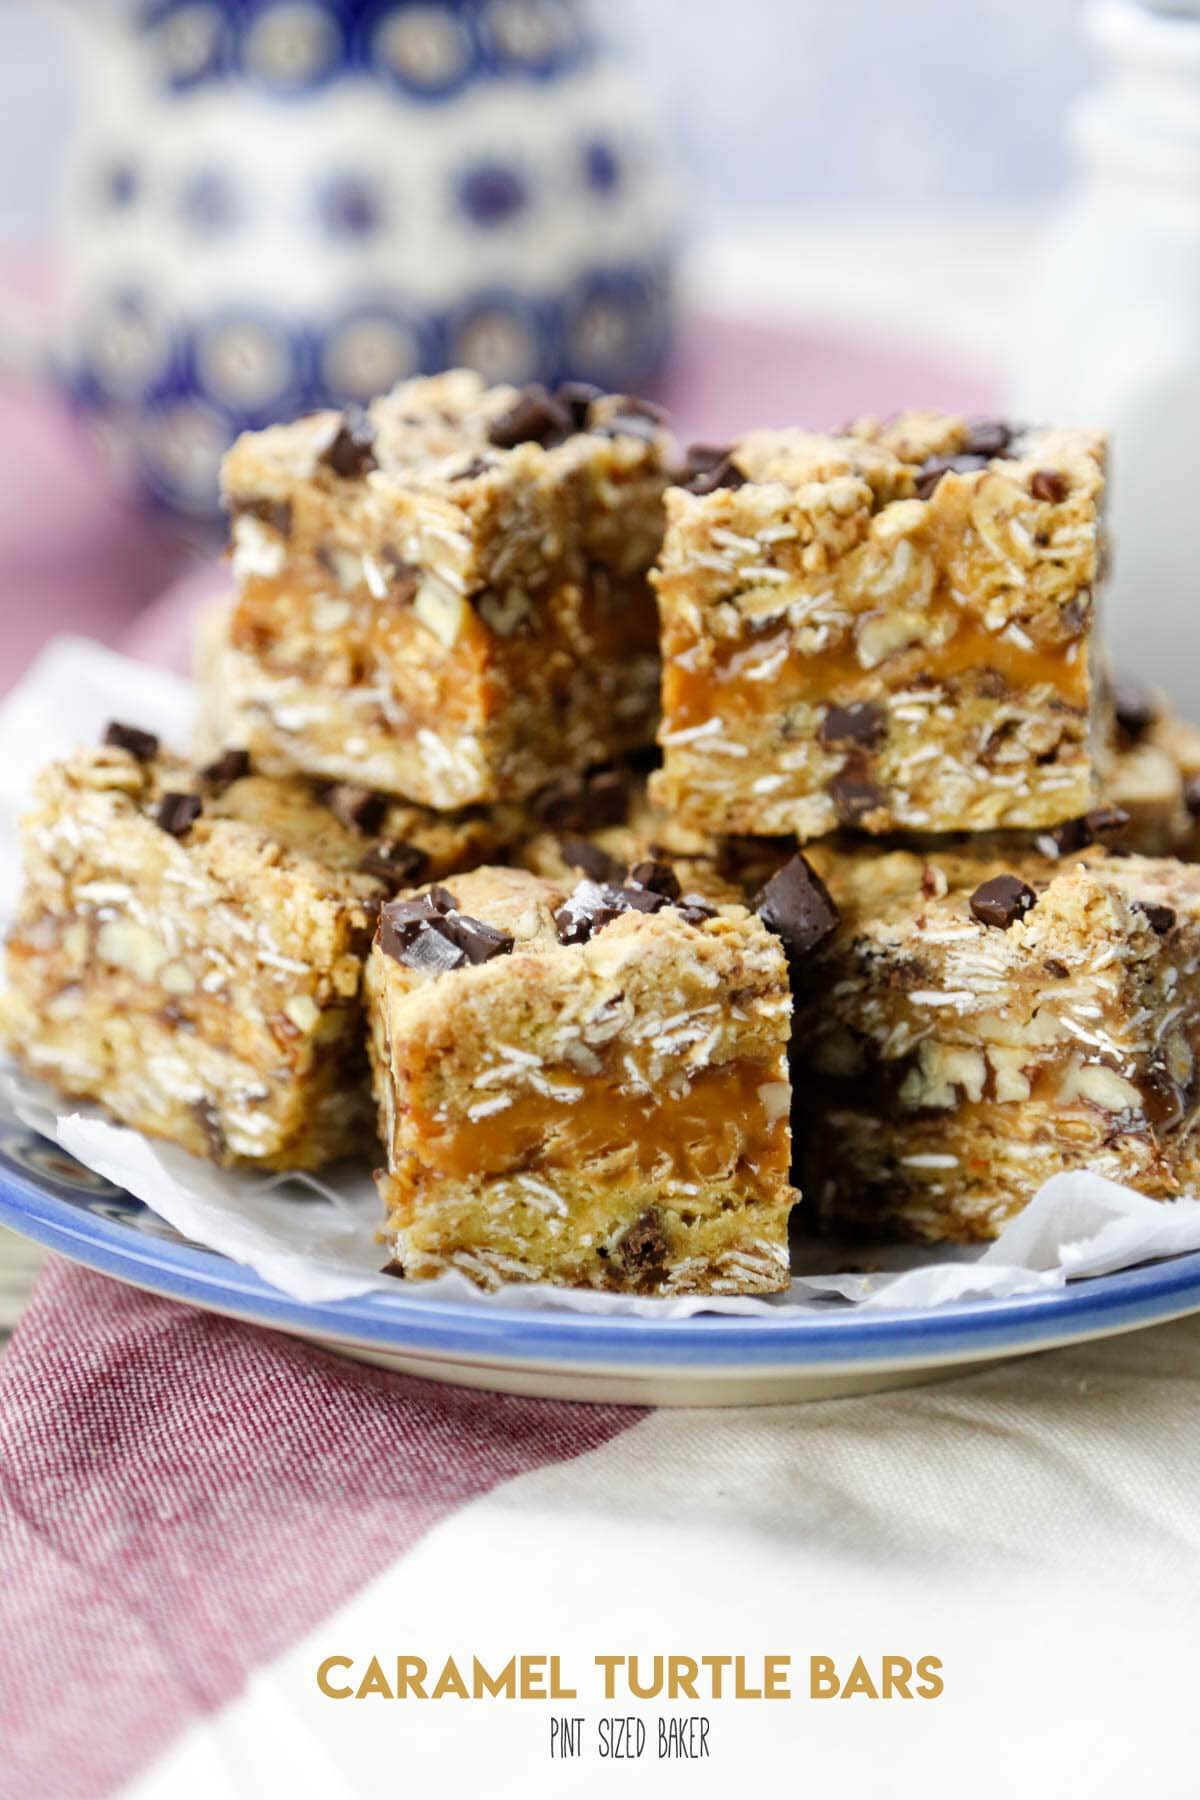 The sweet flavors of caramel, chocolate and pecans come together in this easy recipe that starts with a cake mix. Caramel Turtle Bars are gonna be your new favorite dessert to bake!